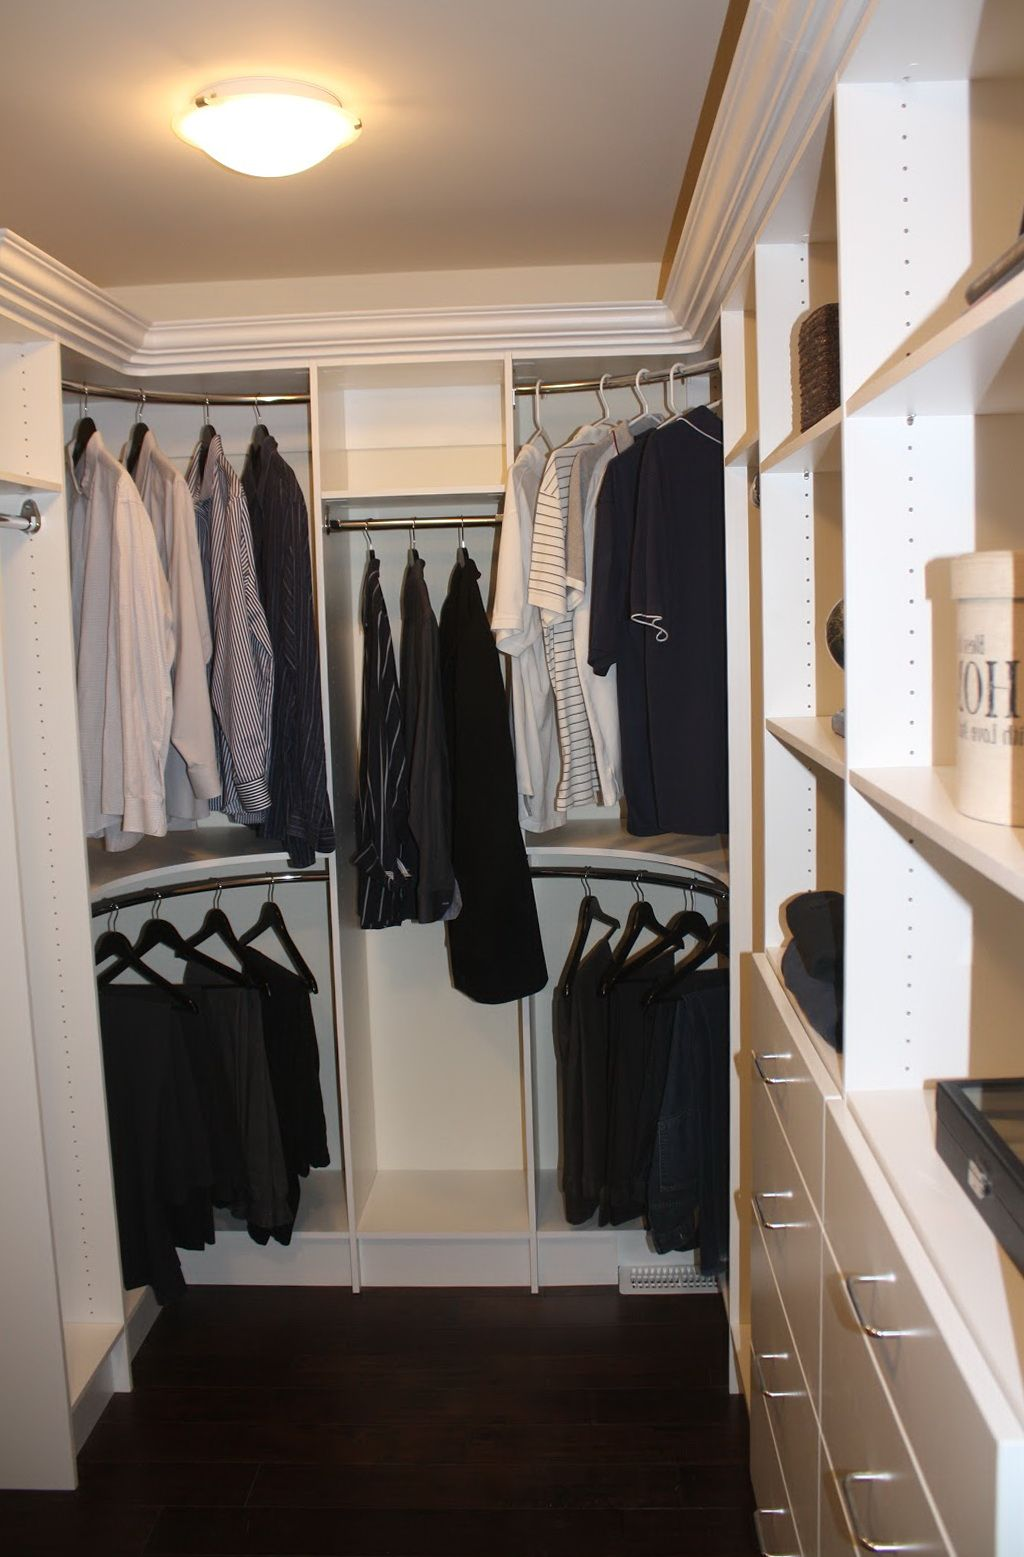 Curved Closet Rod Mesmerizing Curved Closet Rods Corners  Office Closets And Organizational Design Ideas